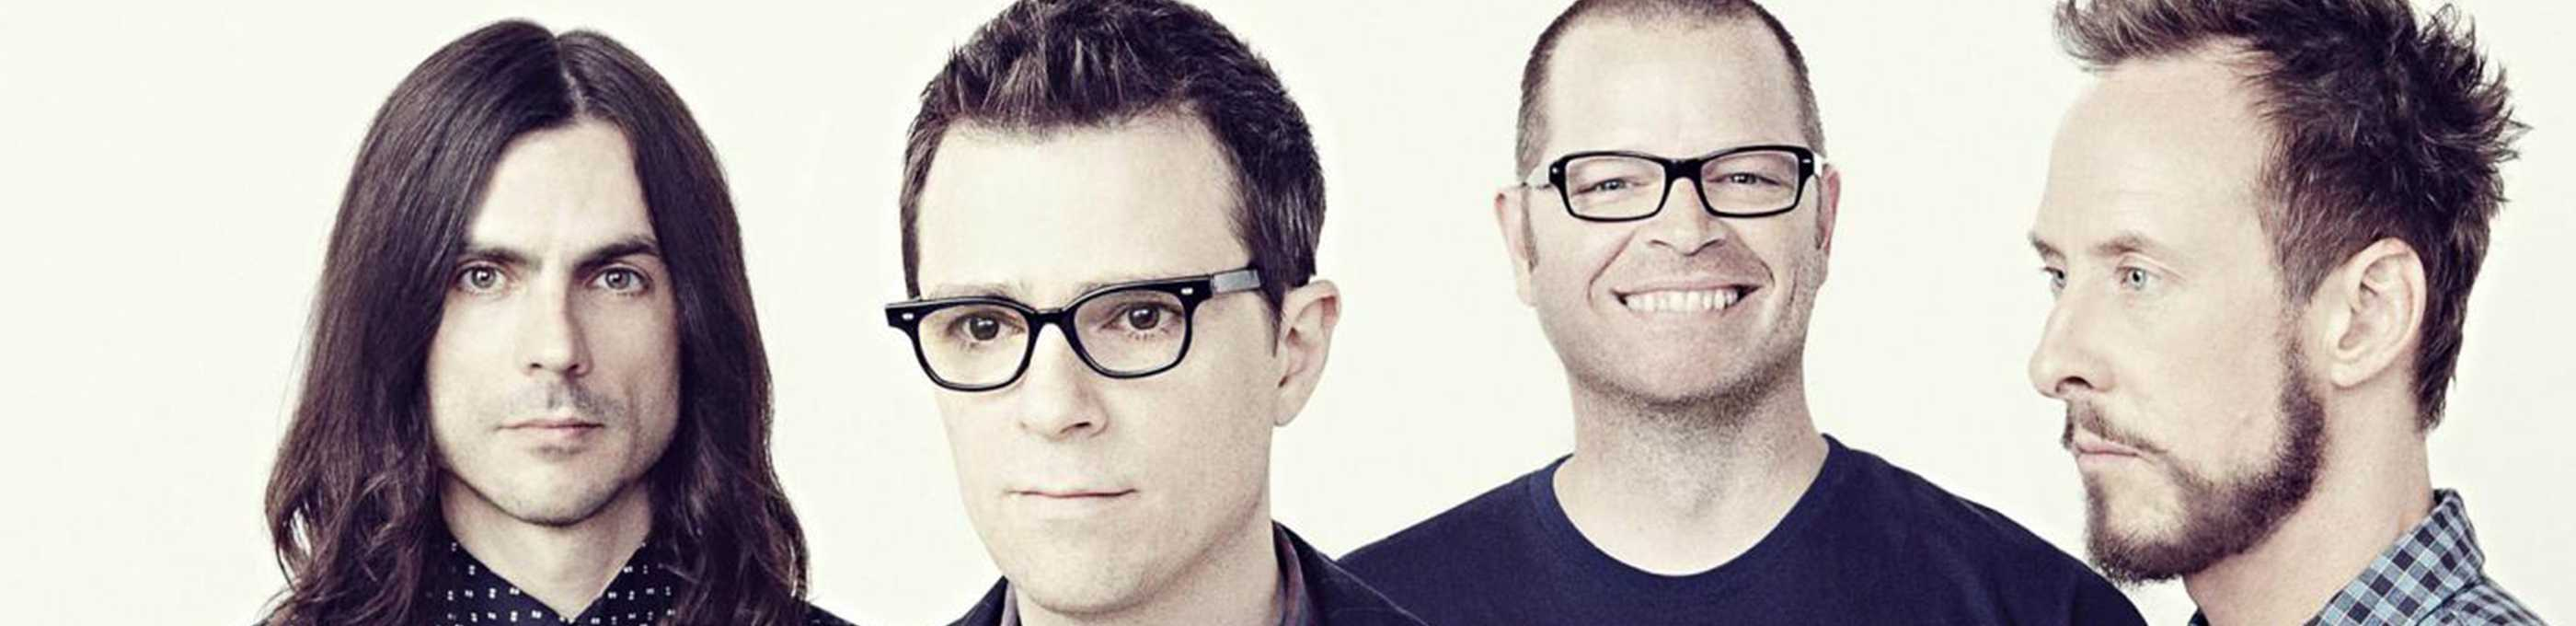 Living 'The Good Life' with Weezer's new album.